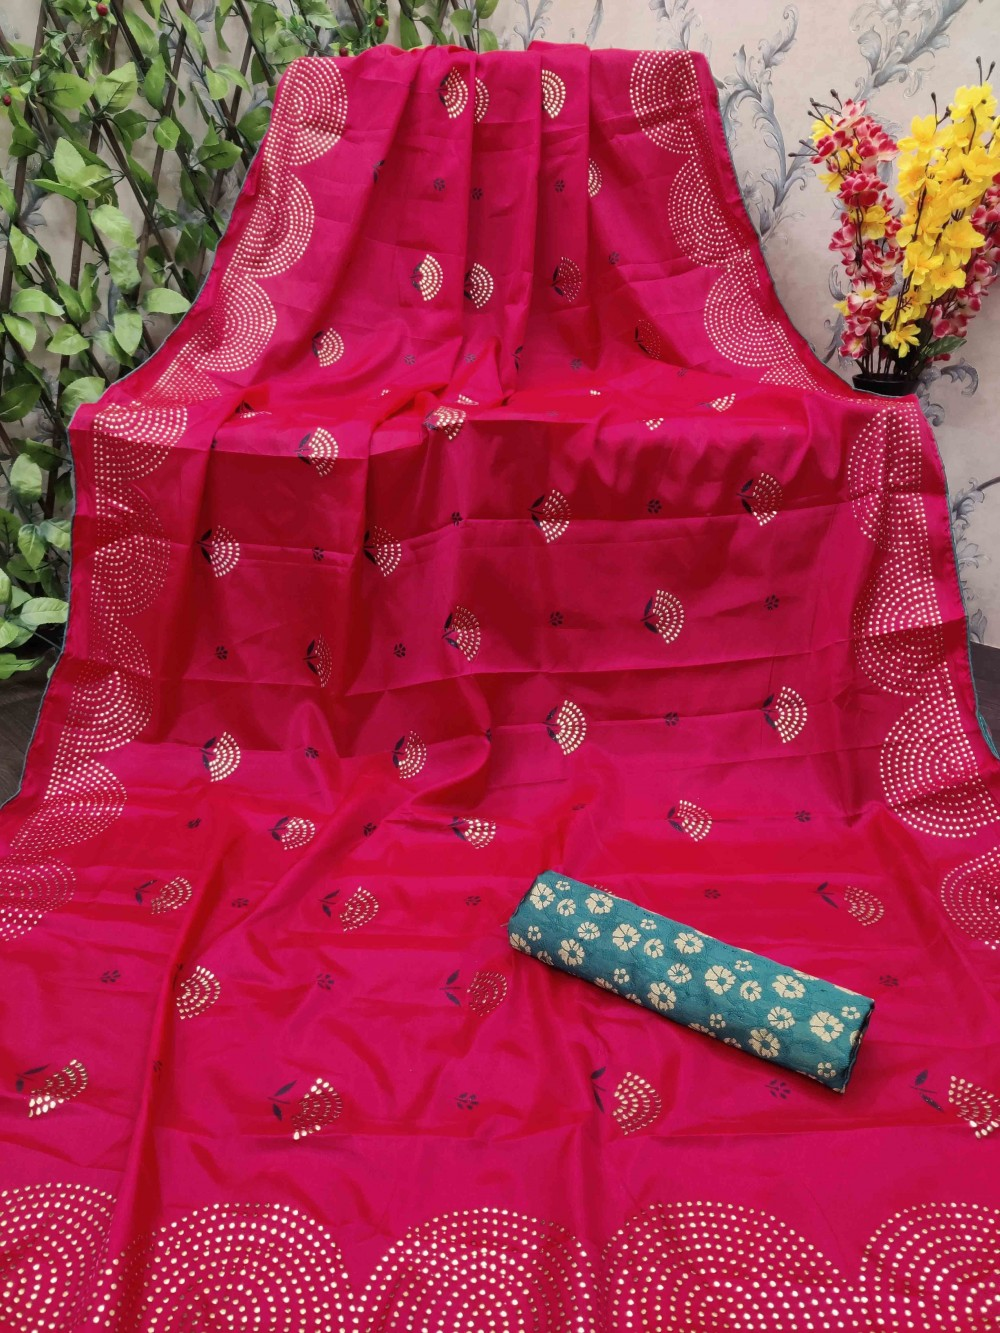 Trendy Store Women s Stone work embellished pattern Saree with contrast Jacquard art silk Blouse